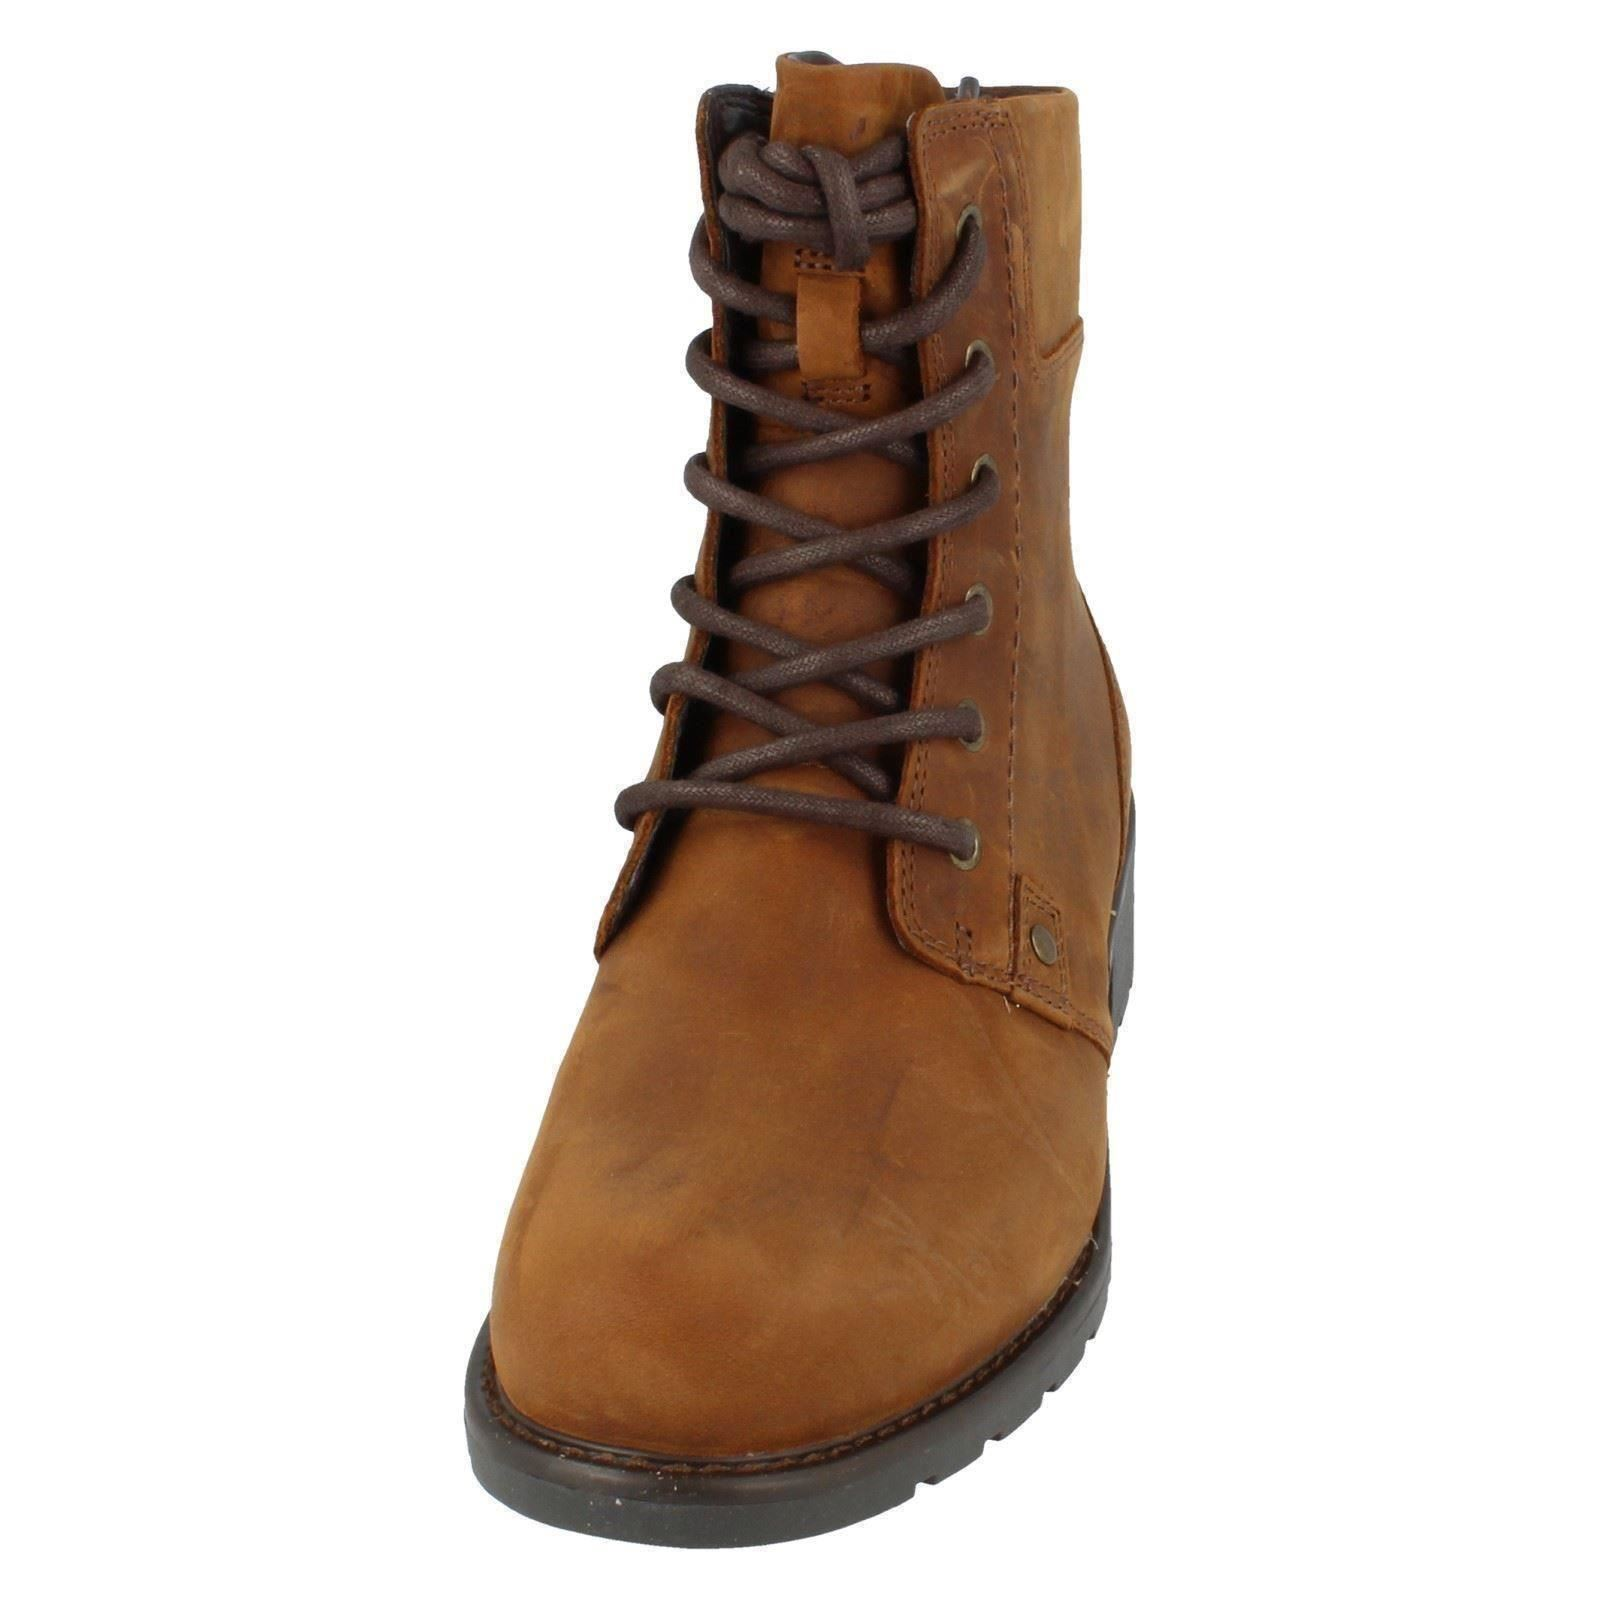 Ladies-Clarks-Casual-Lace-Up-Inside-Zip-Nubuck-Leather-Ankle-Boots-Orinoco-Spice thumbnail 27